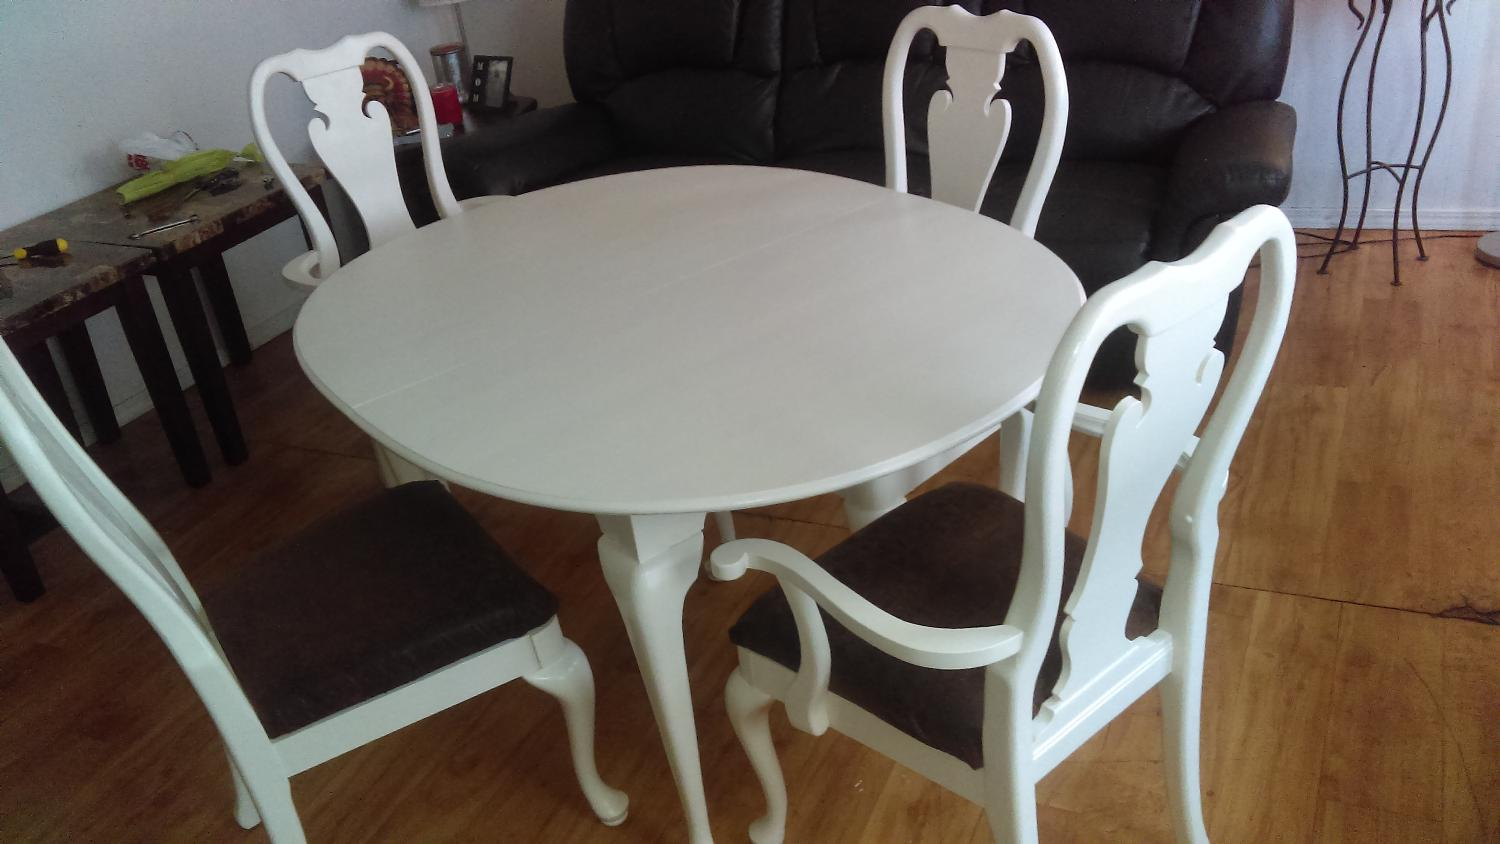 Find more beautiful all wood kitchen table and chairs for for Beautiful kitchen table and chairs